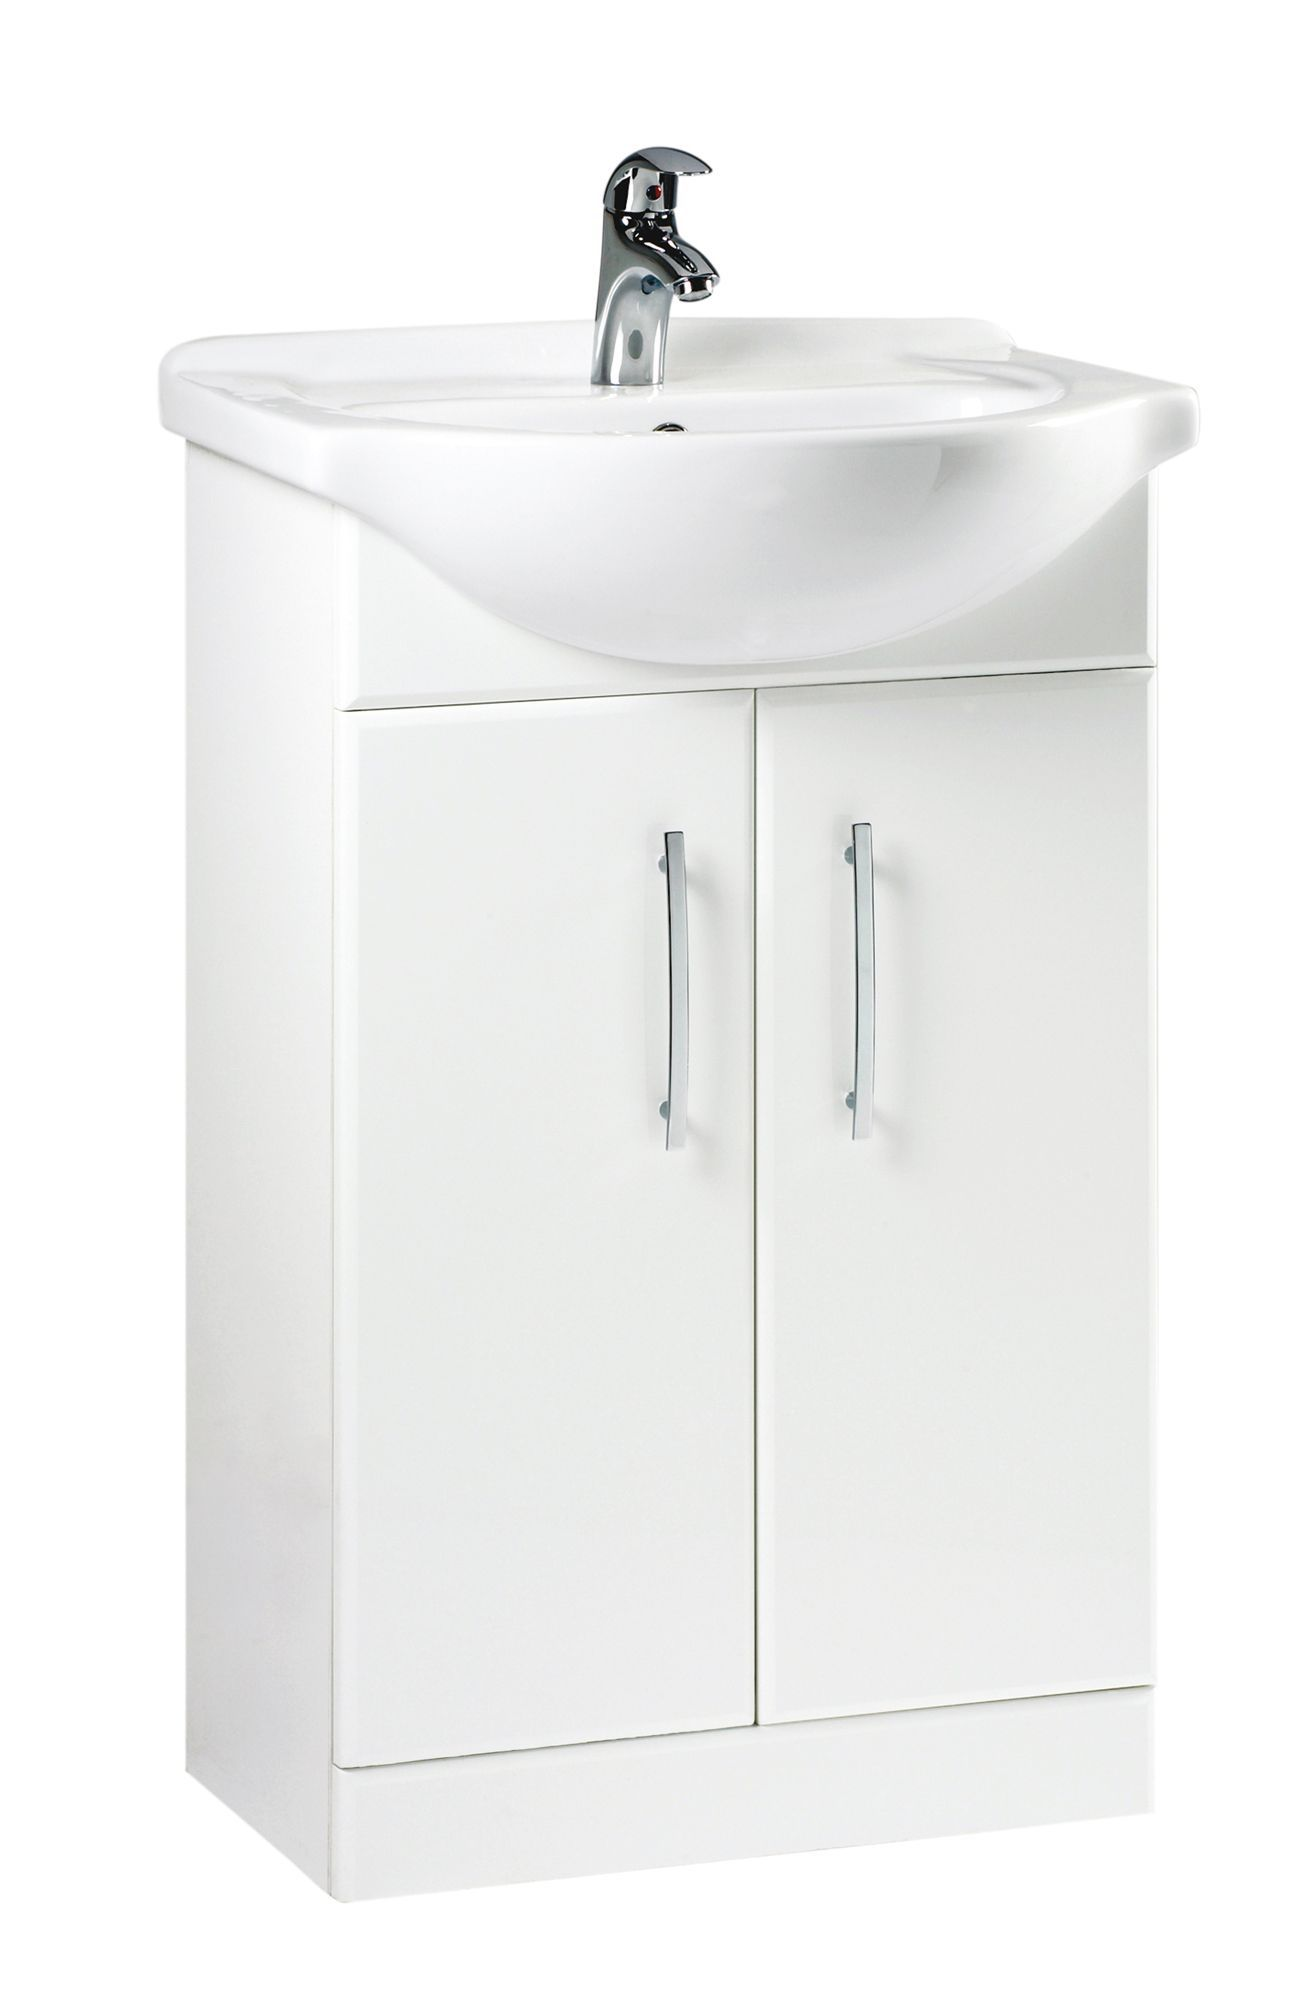 B q white vanity unit basin departments diy at b q B q bathroom design service